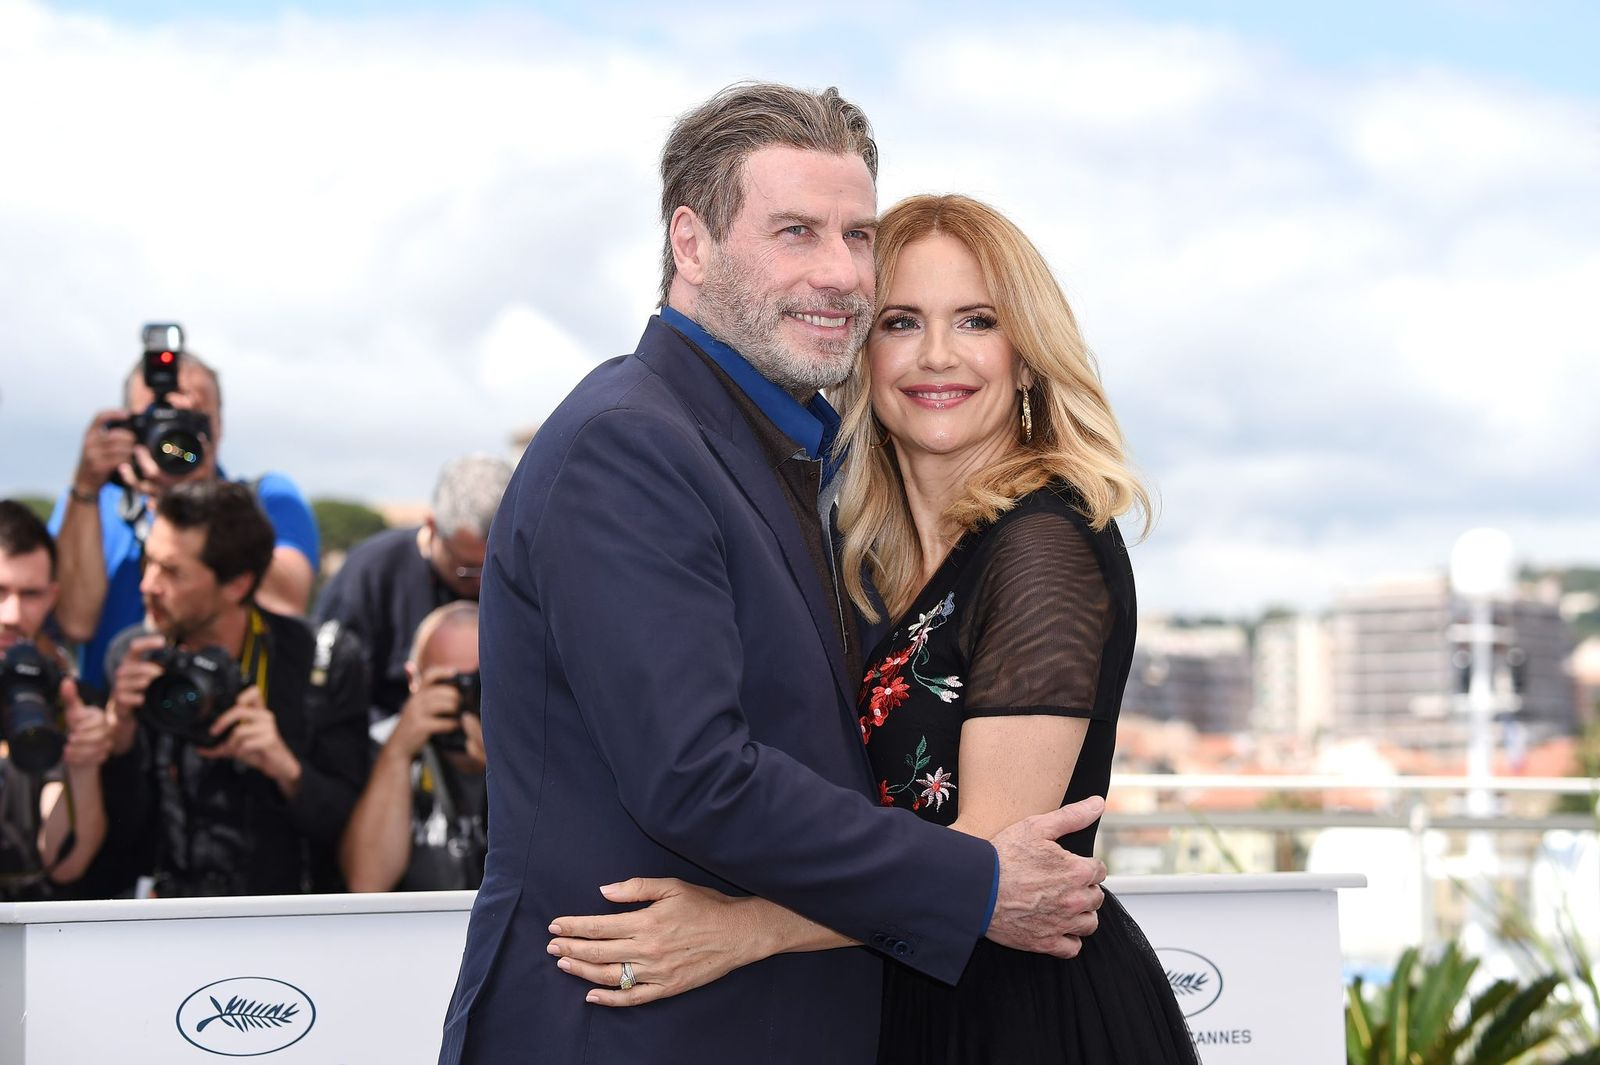 """Kelly Preston and John Travolta at the """"Rendezvous With John Travolta - Gotti"""" Photocall at the 71st annual Cannes Film Festival on May 15, 2018   Photo: Getty Images"""